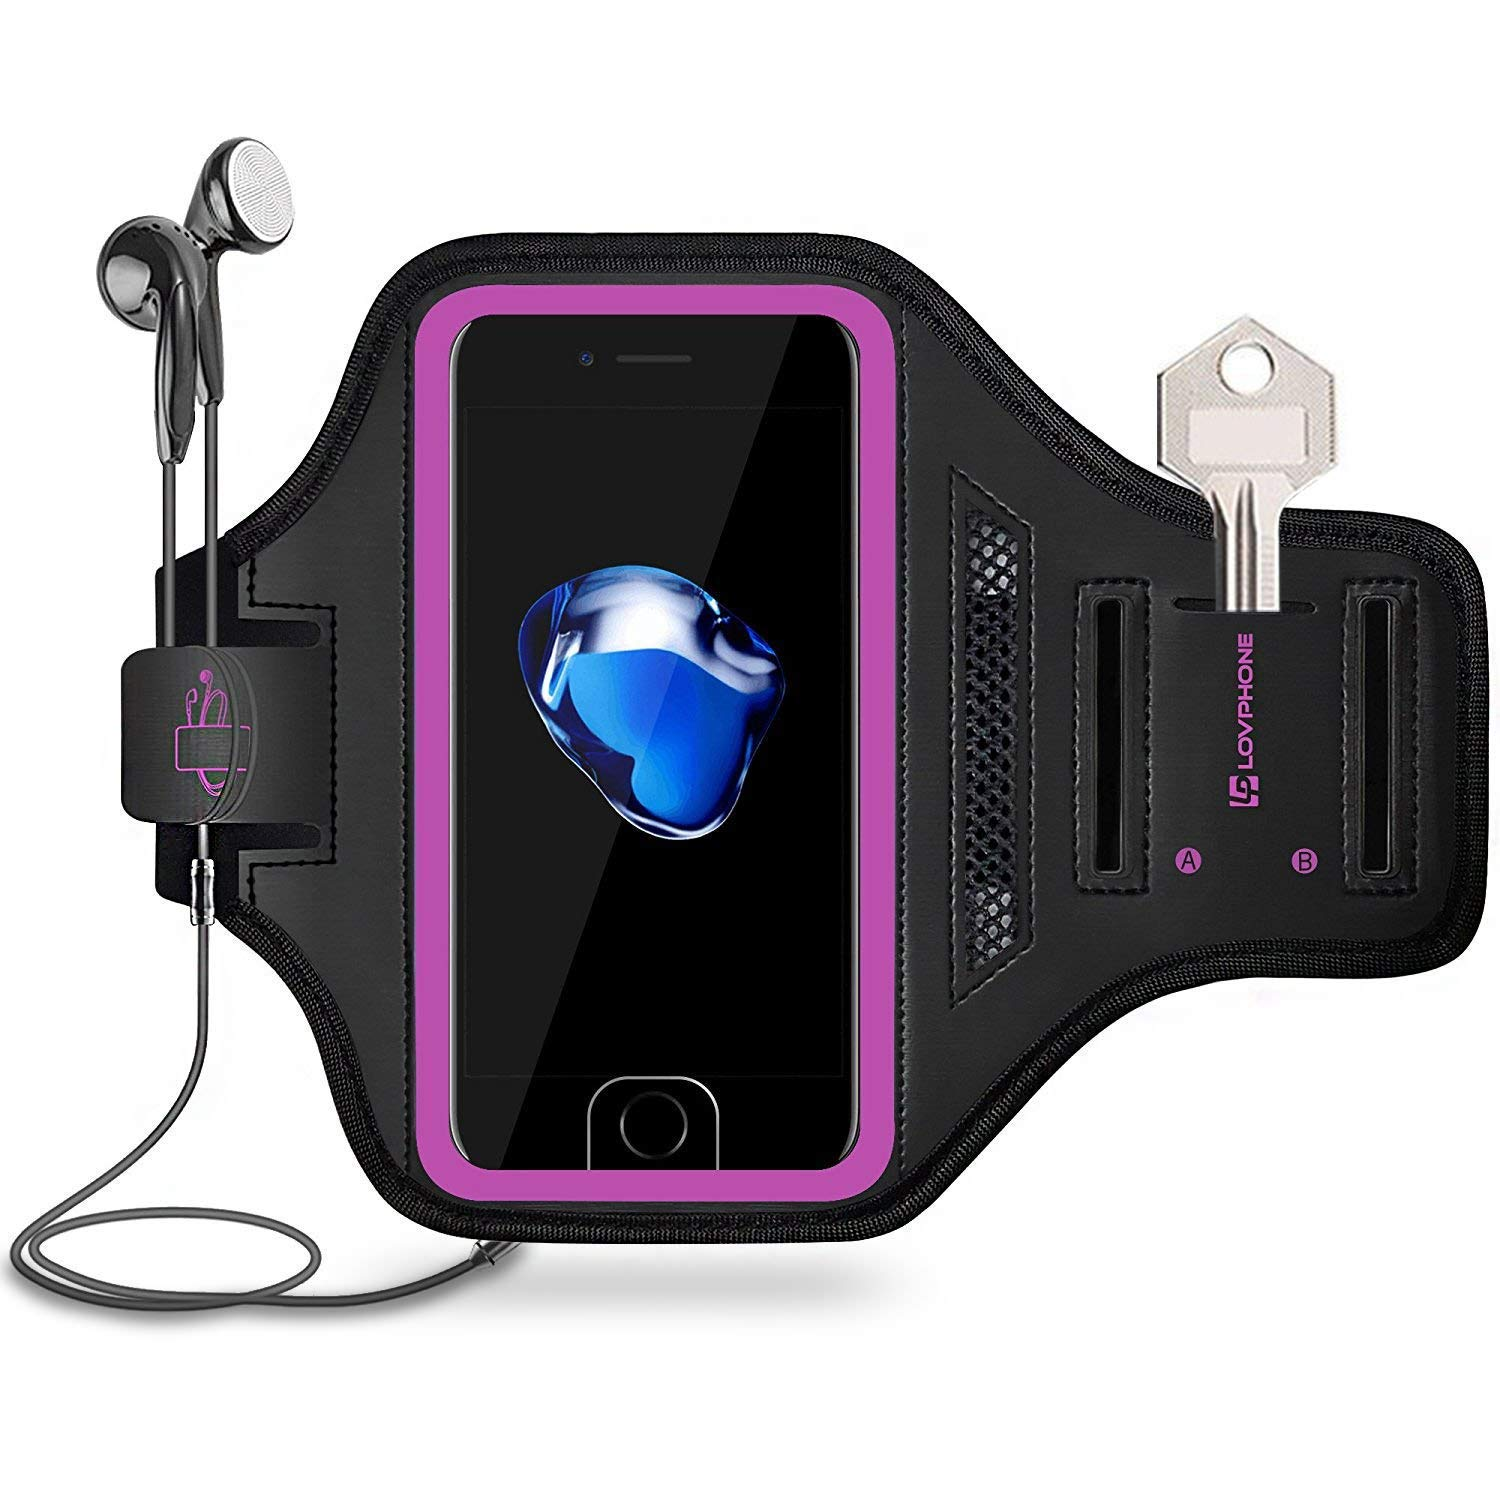 LOVPHONE Man/Women Running Sport Armband for iPhone 7/8 Plus Suitable for Gym Workout w/Kickstand Key Bag Earbuds Holder Card Slot Case, Water Resistant (Rosy)